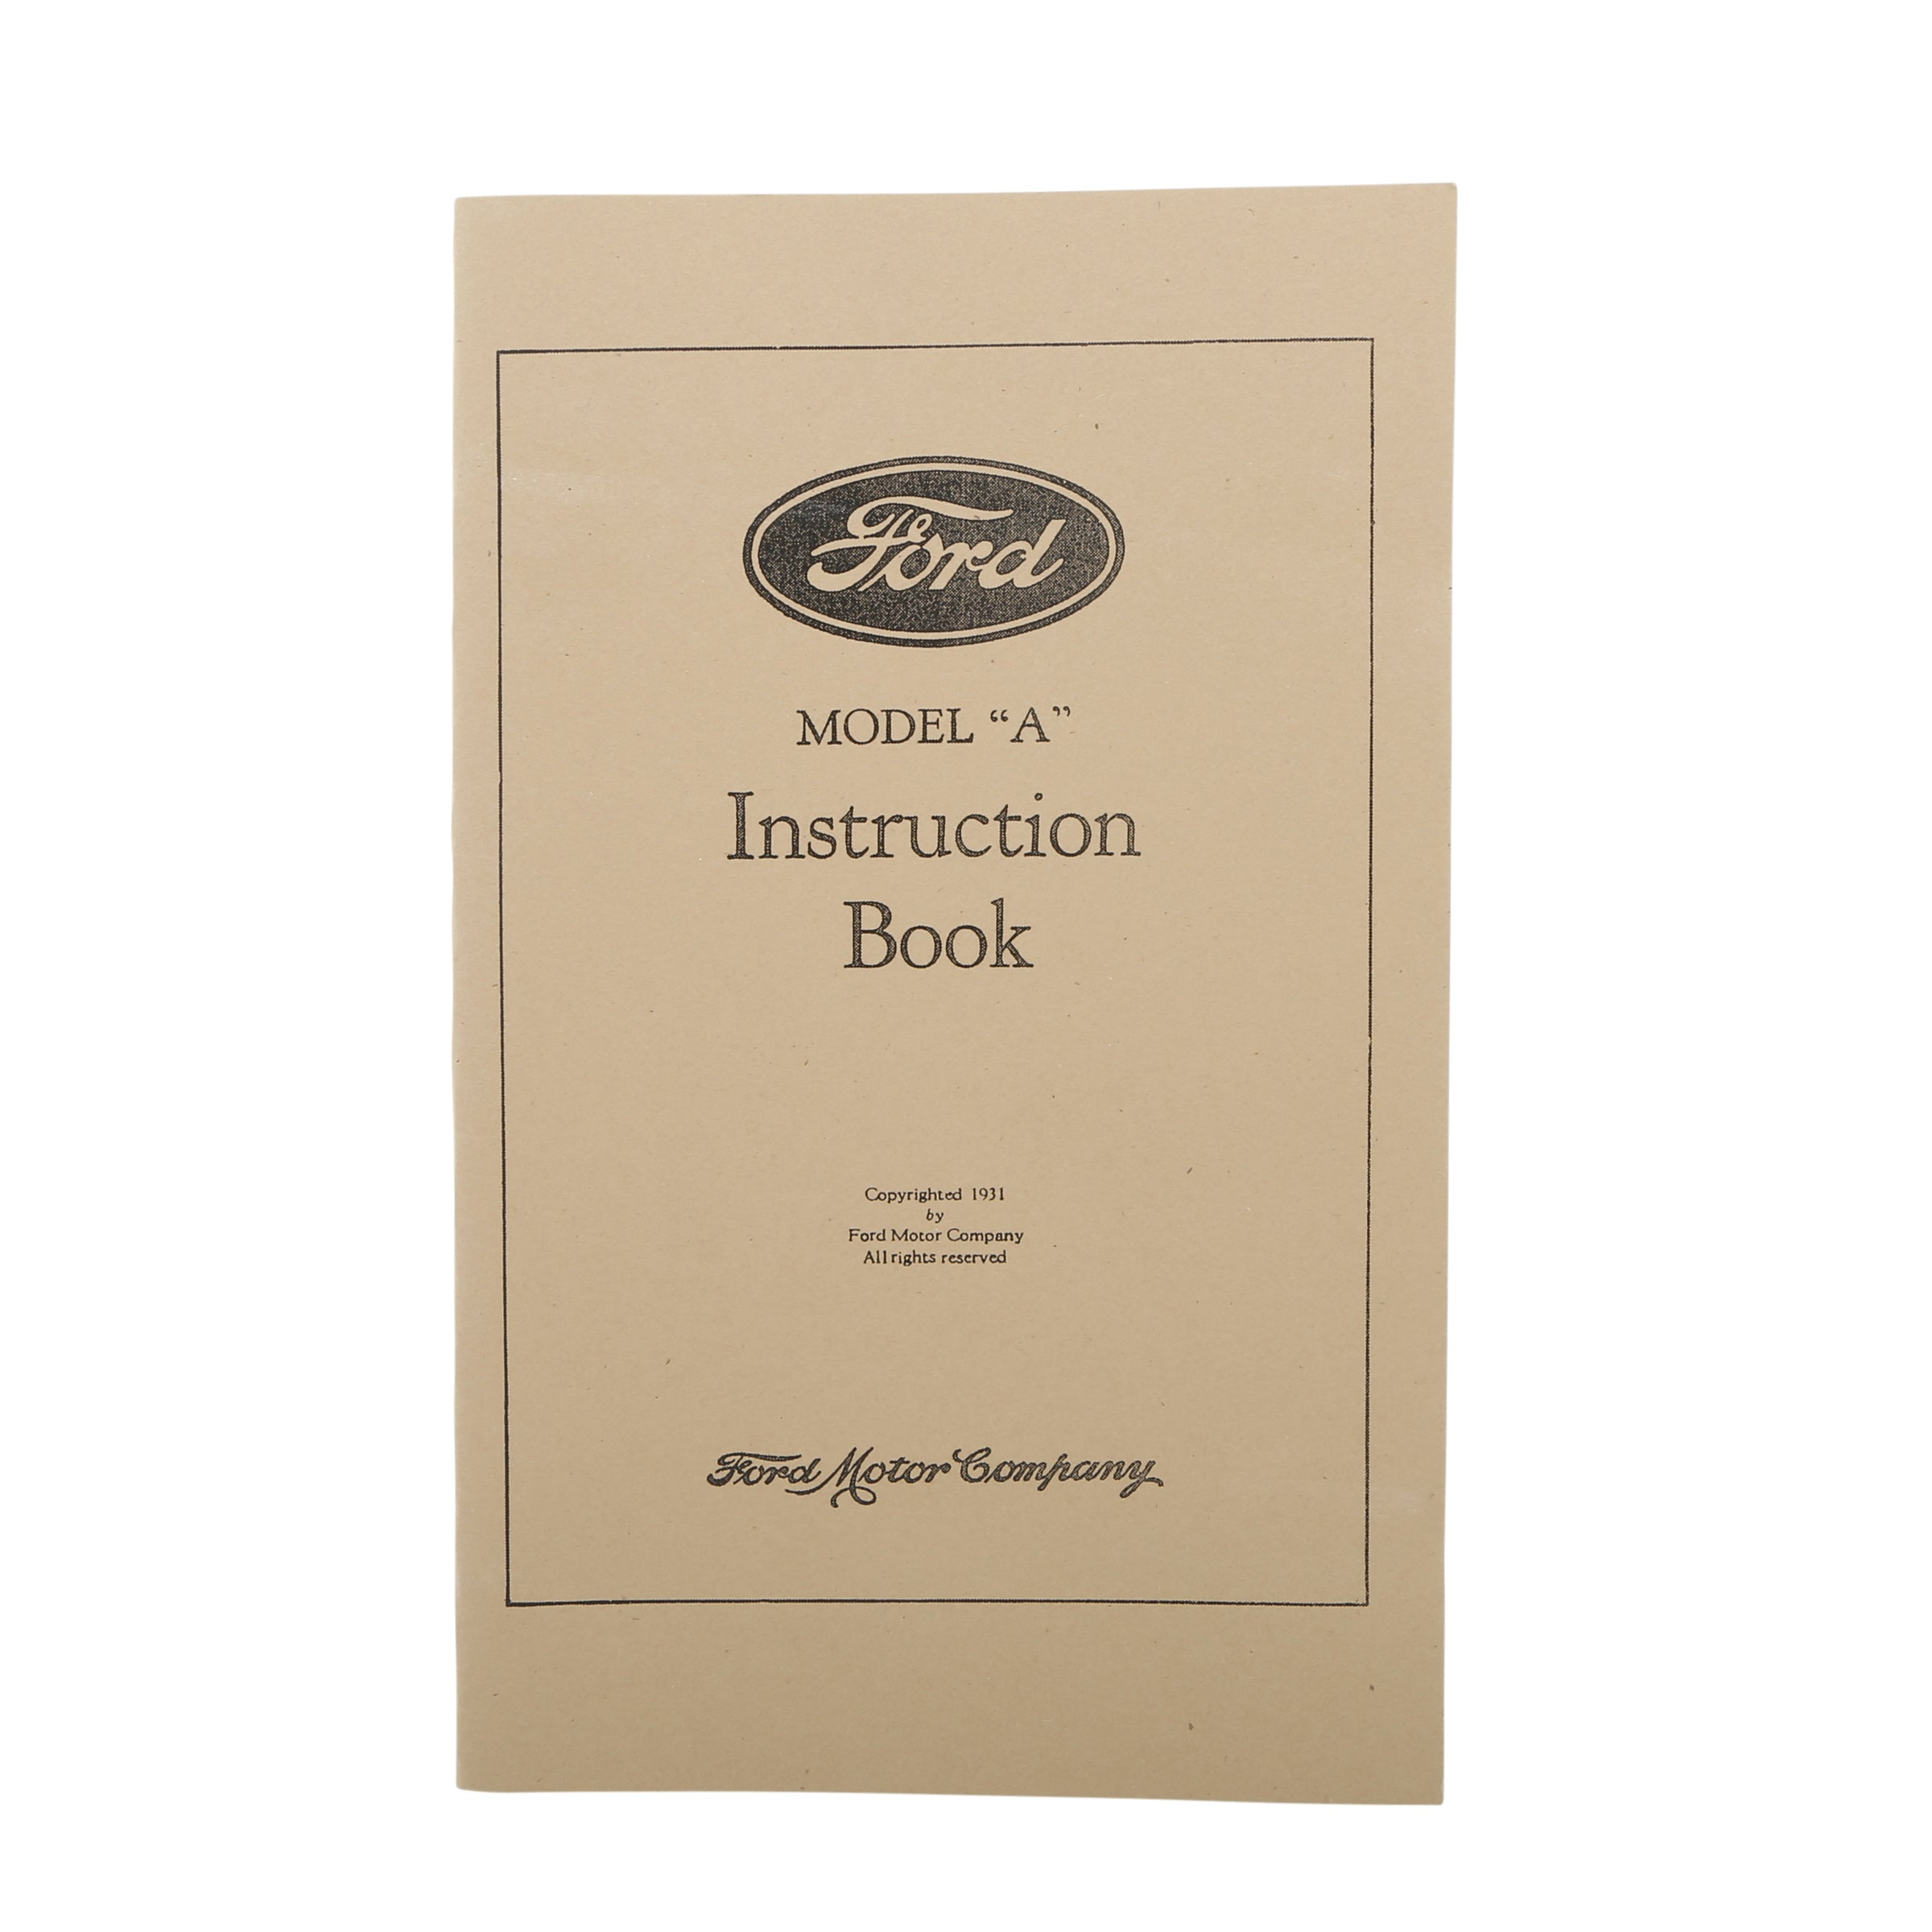 Model A Ford Owner's Manual • 1931